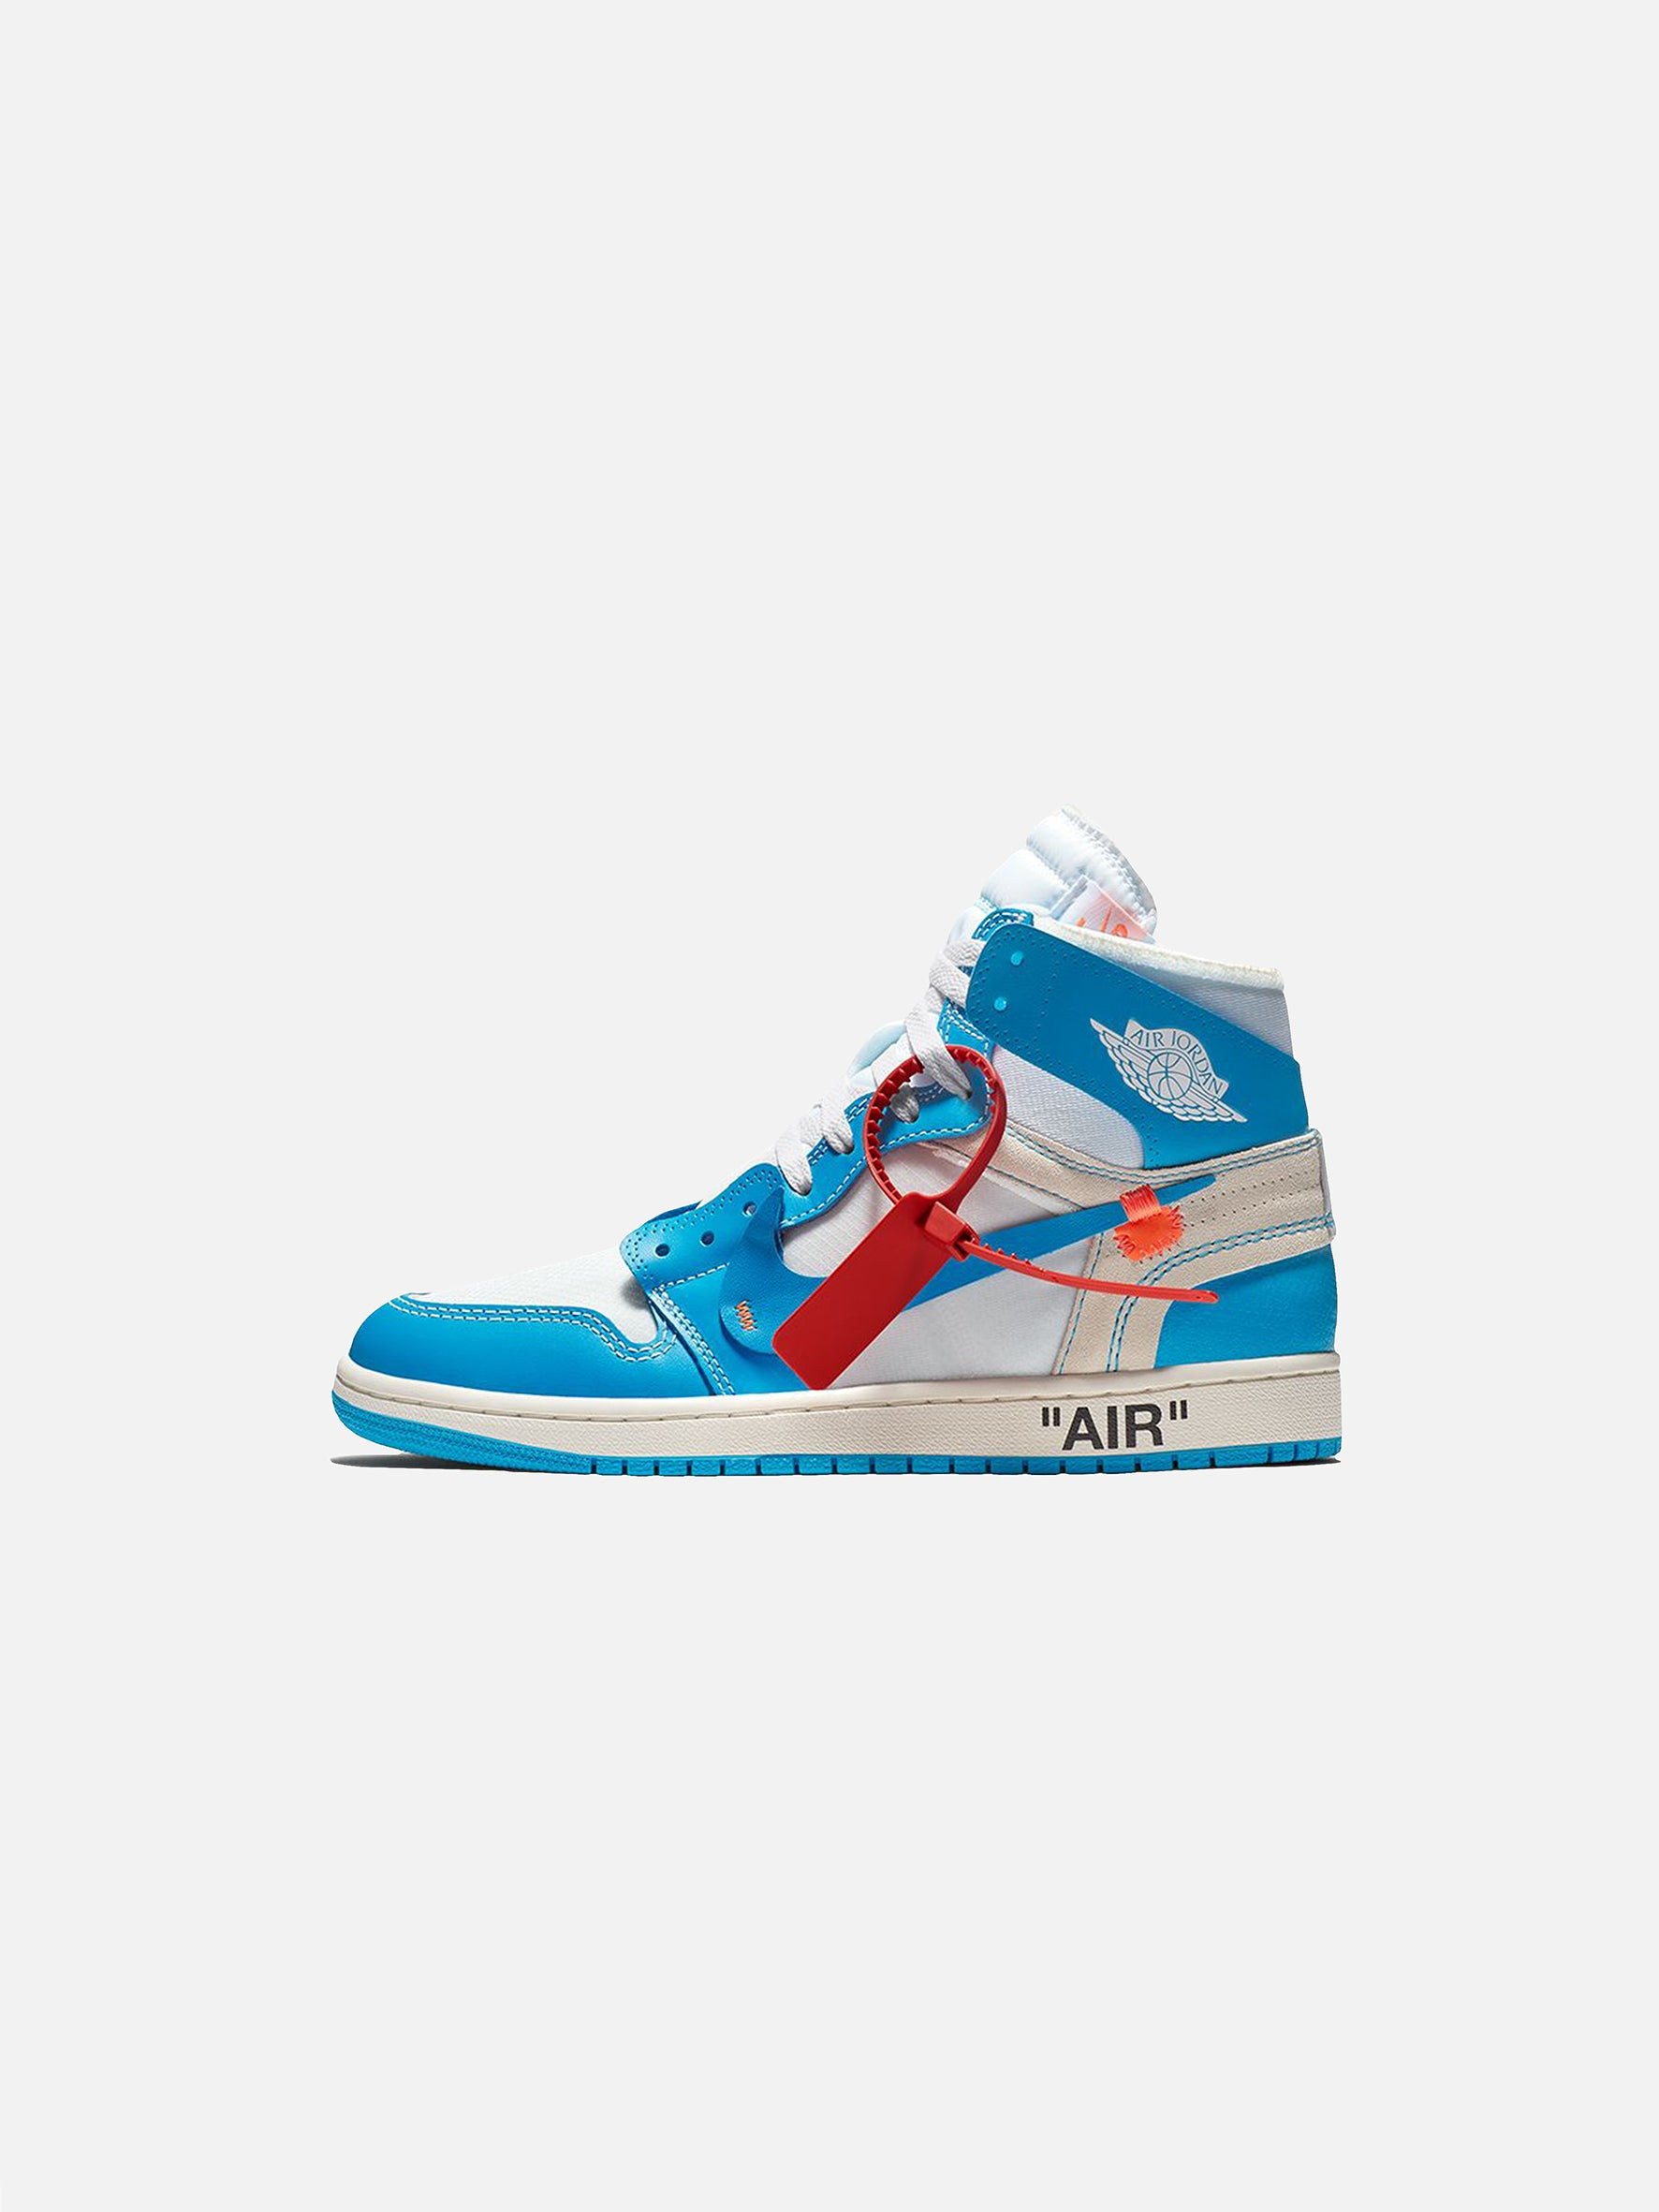 Nike x Off-White™ c/o Virgil Abloh Air Jordan 1 UNC